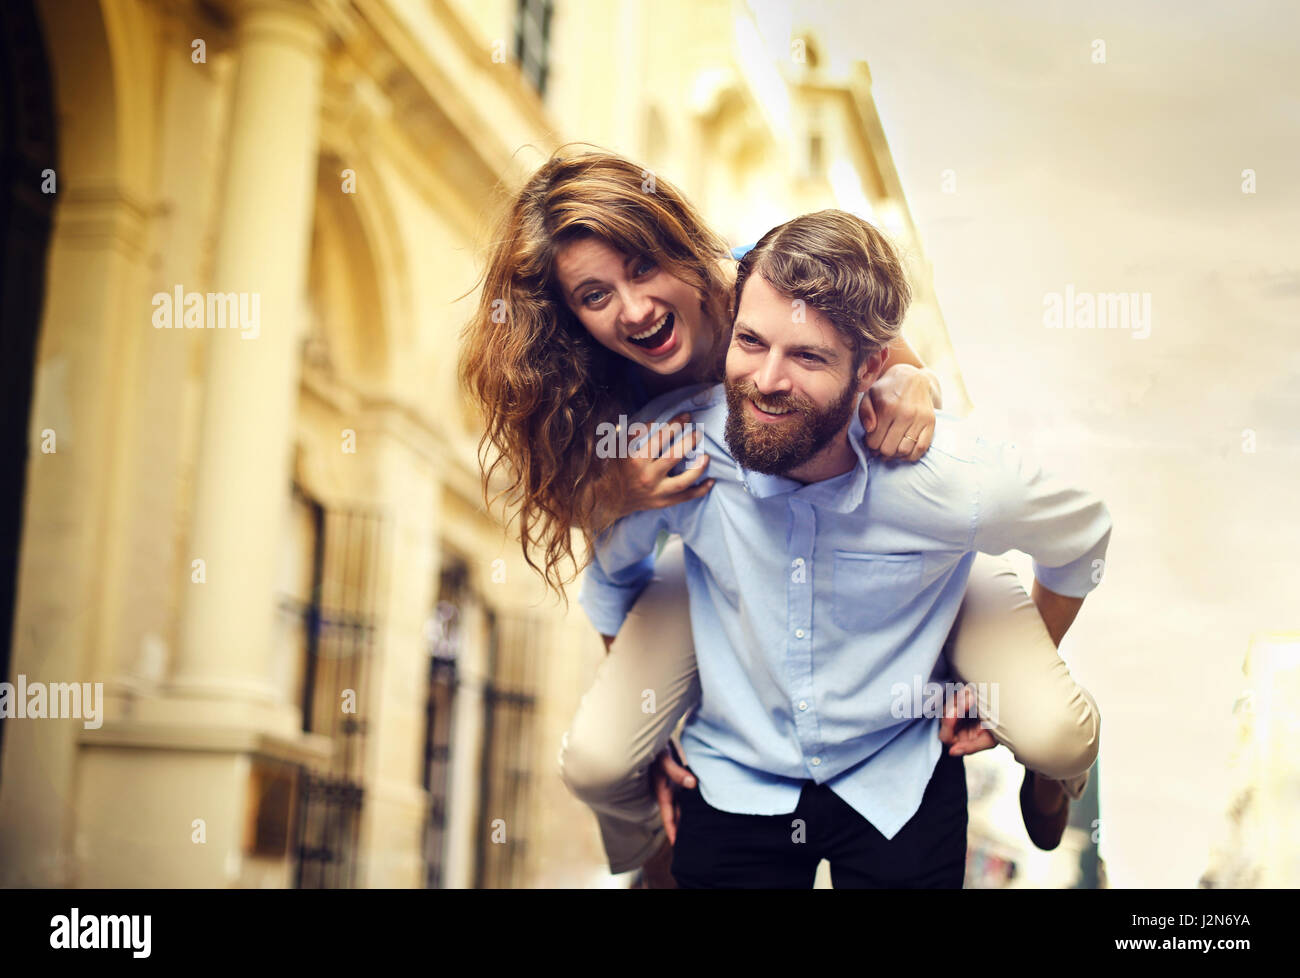 Man giving woman a piggy back - Stock Image